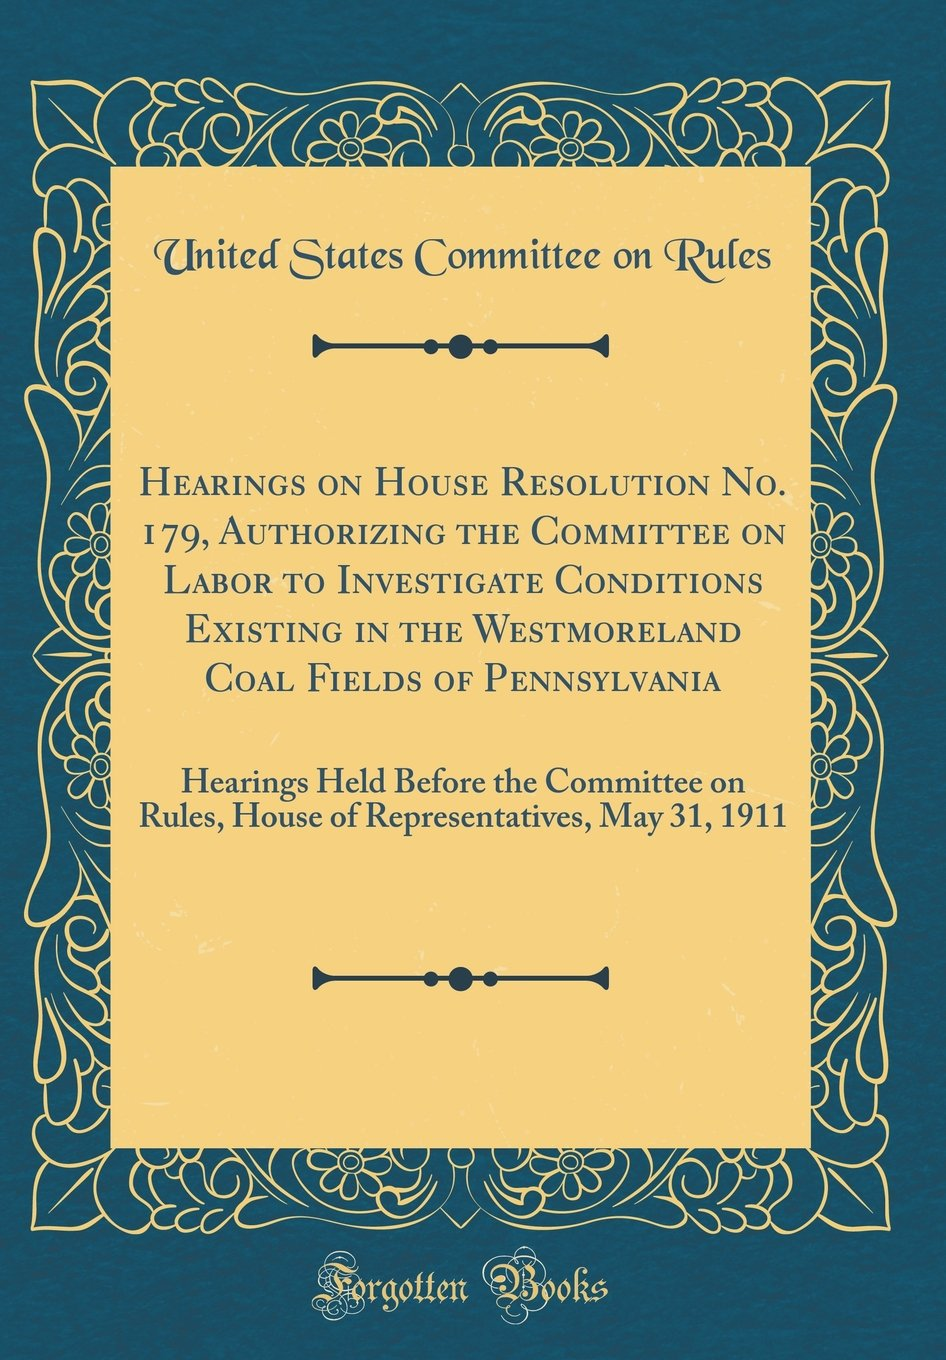 Read Online Hearings on House Resolution No. 179, Authorizing the Committee on Labor to Investigate Conditions Existing in the Westmoreland Coal Fields of ... Rules, House of Representatives, May 31, 1911 pdf epub